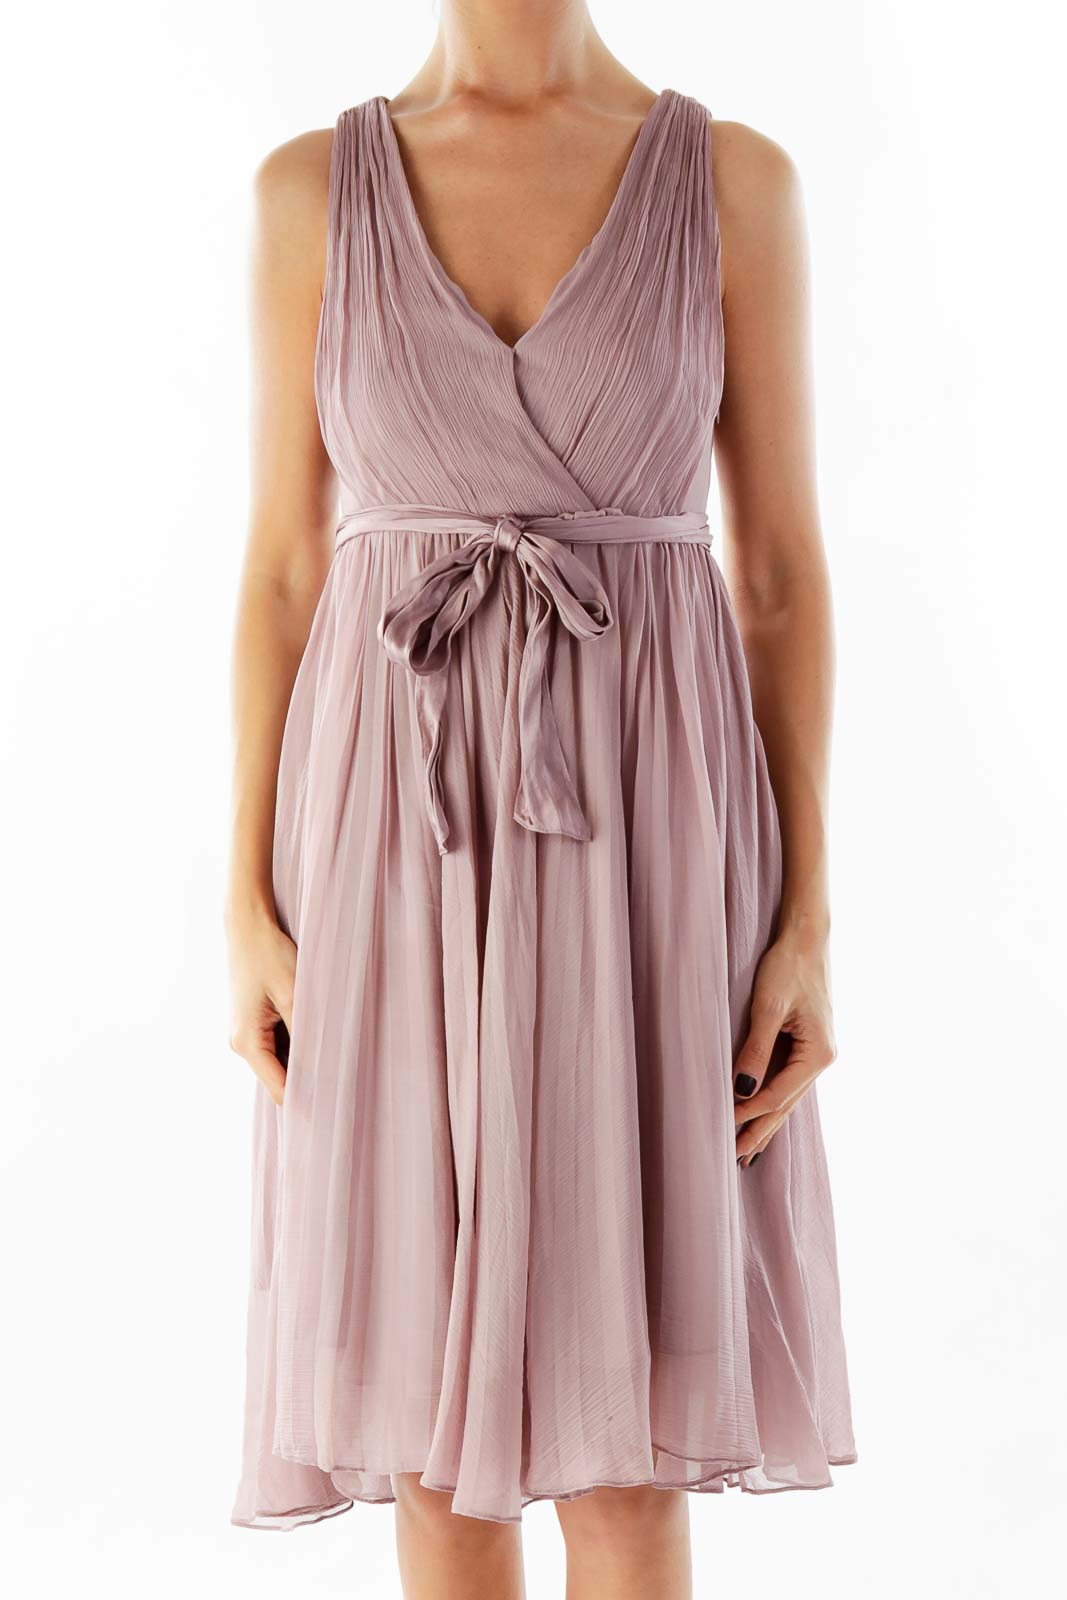 Purple Chiffon Belted Dress